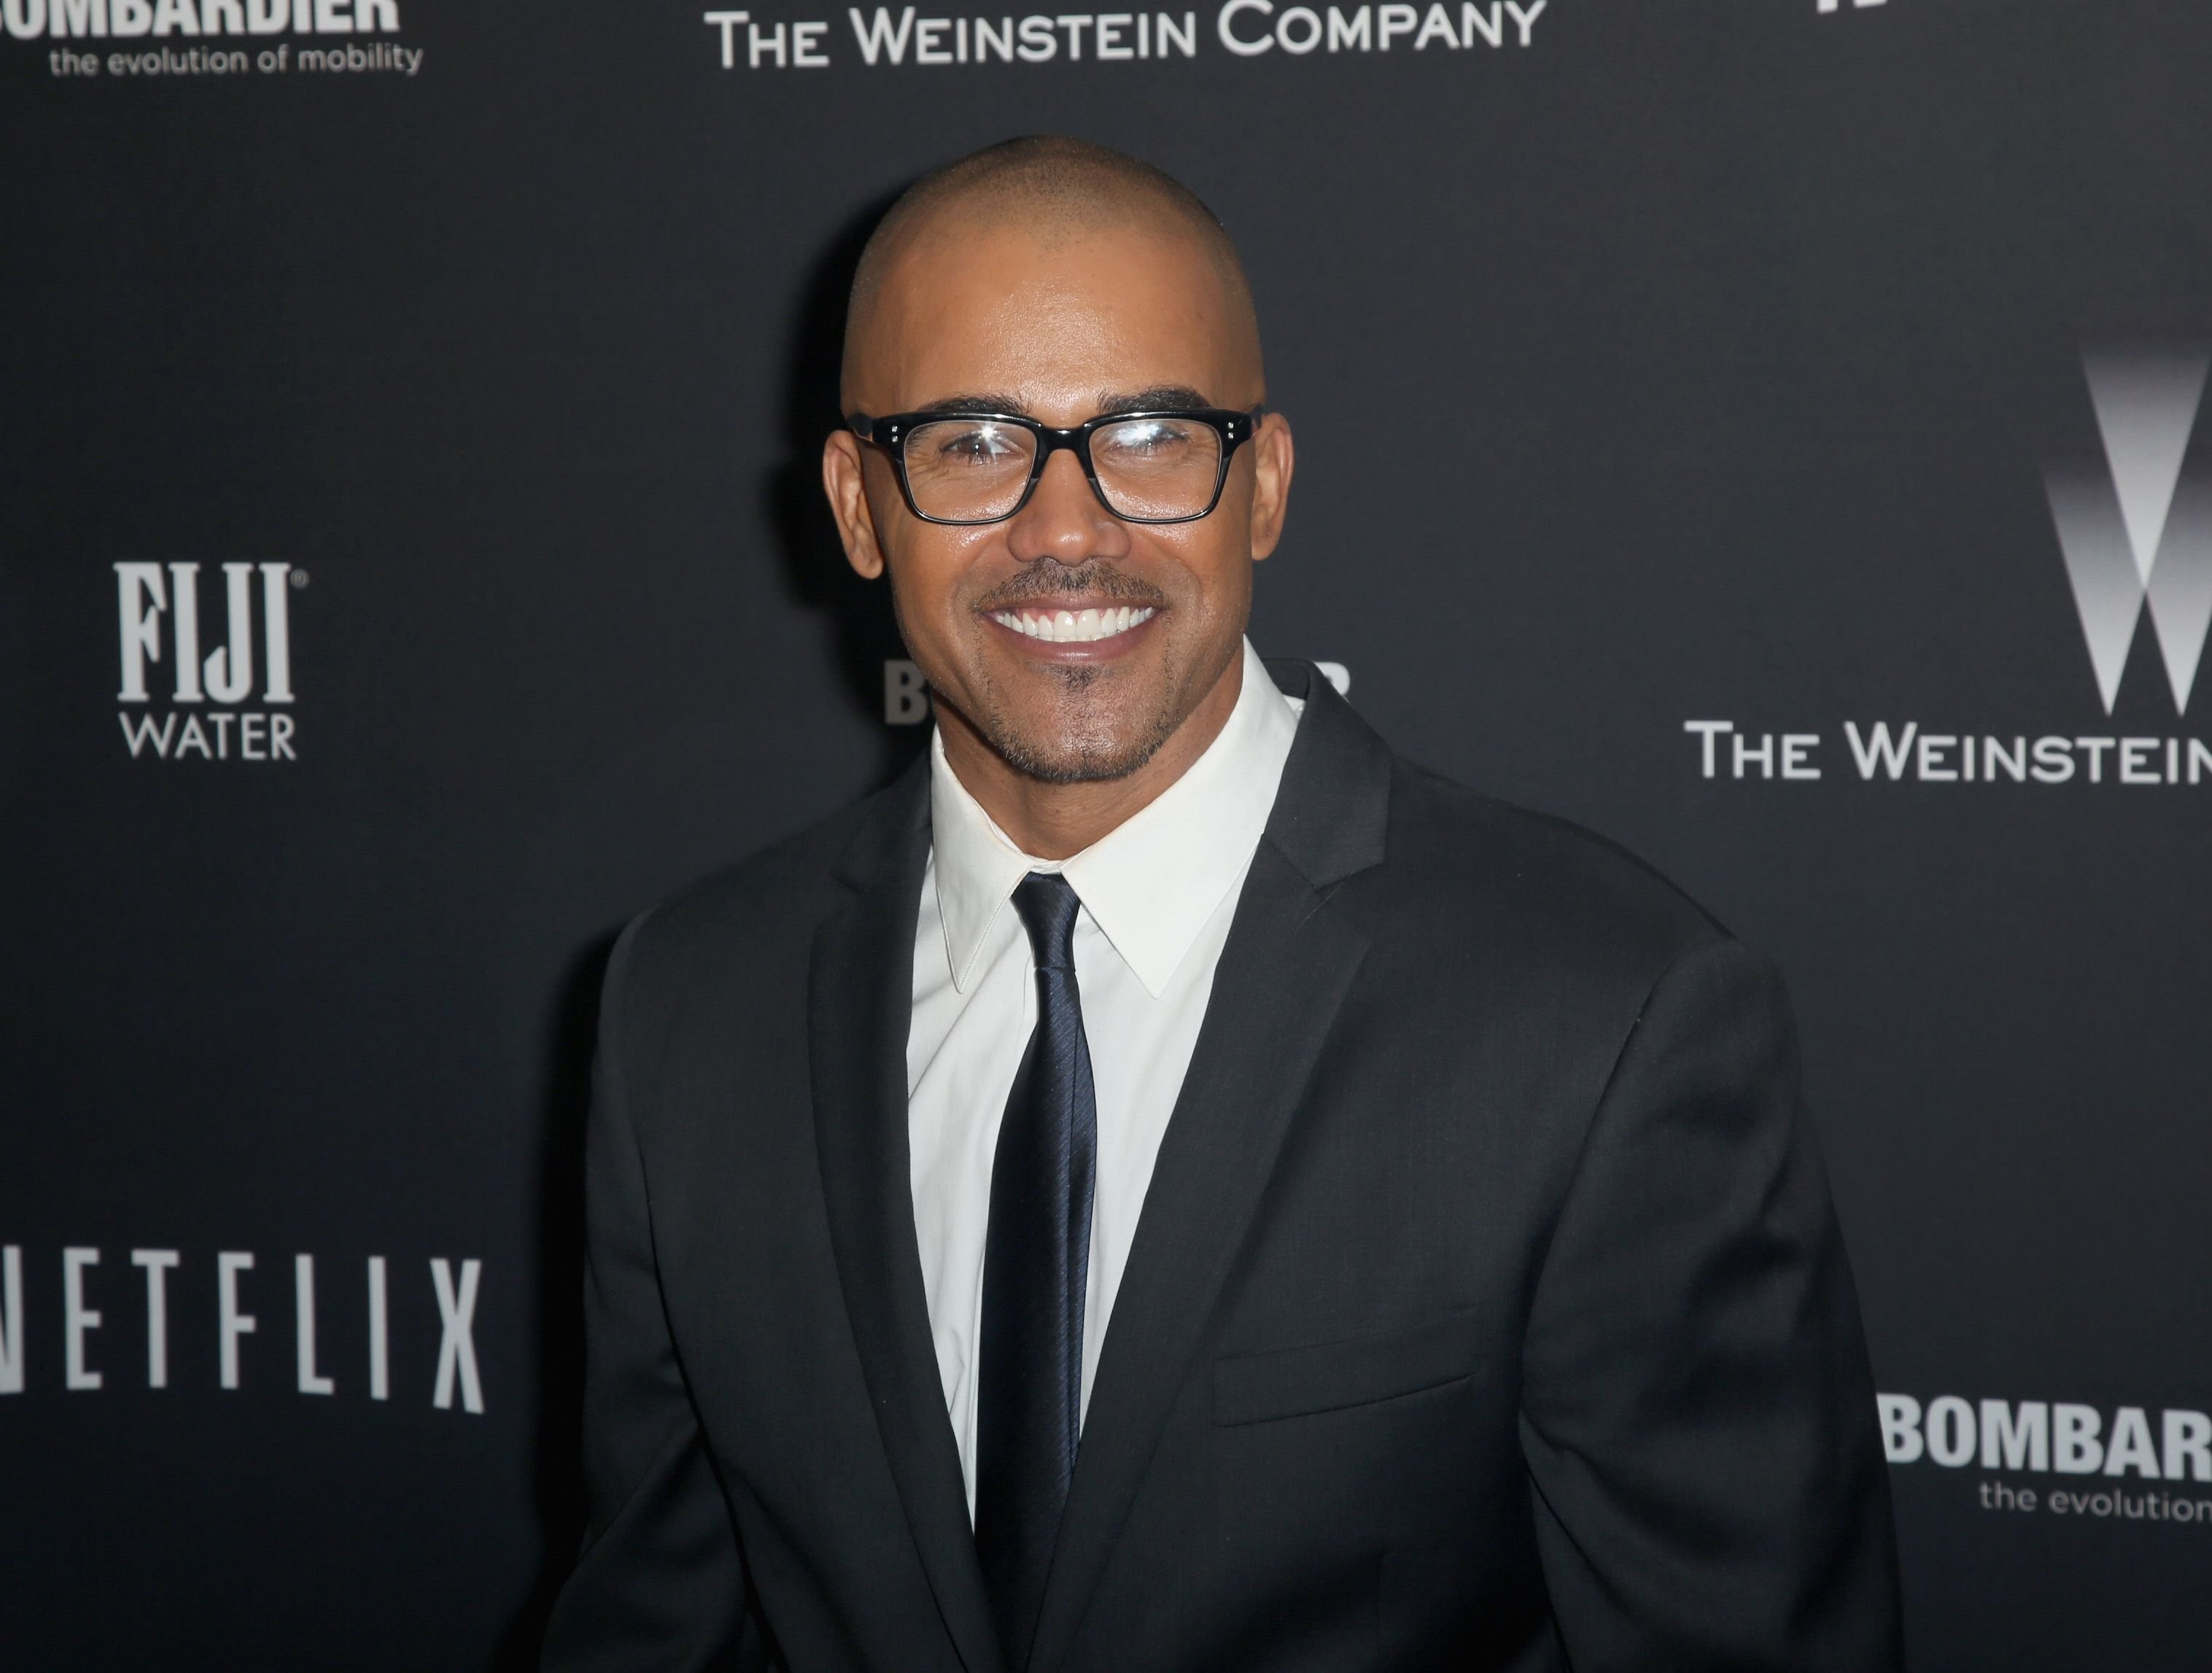 Actor Shemar Moore at The Weinstein Company & Netflix's 2014 Golden Globes After Party at The Beverly Hilton Hotel on January 12, 2014 in Beverly Hills, California. | Photo: Getty Images